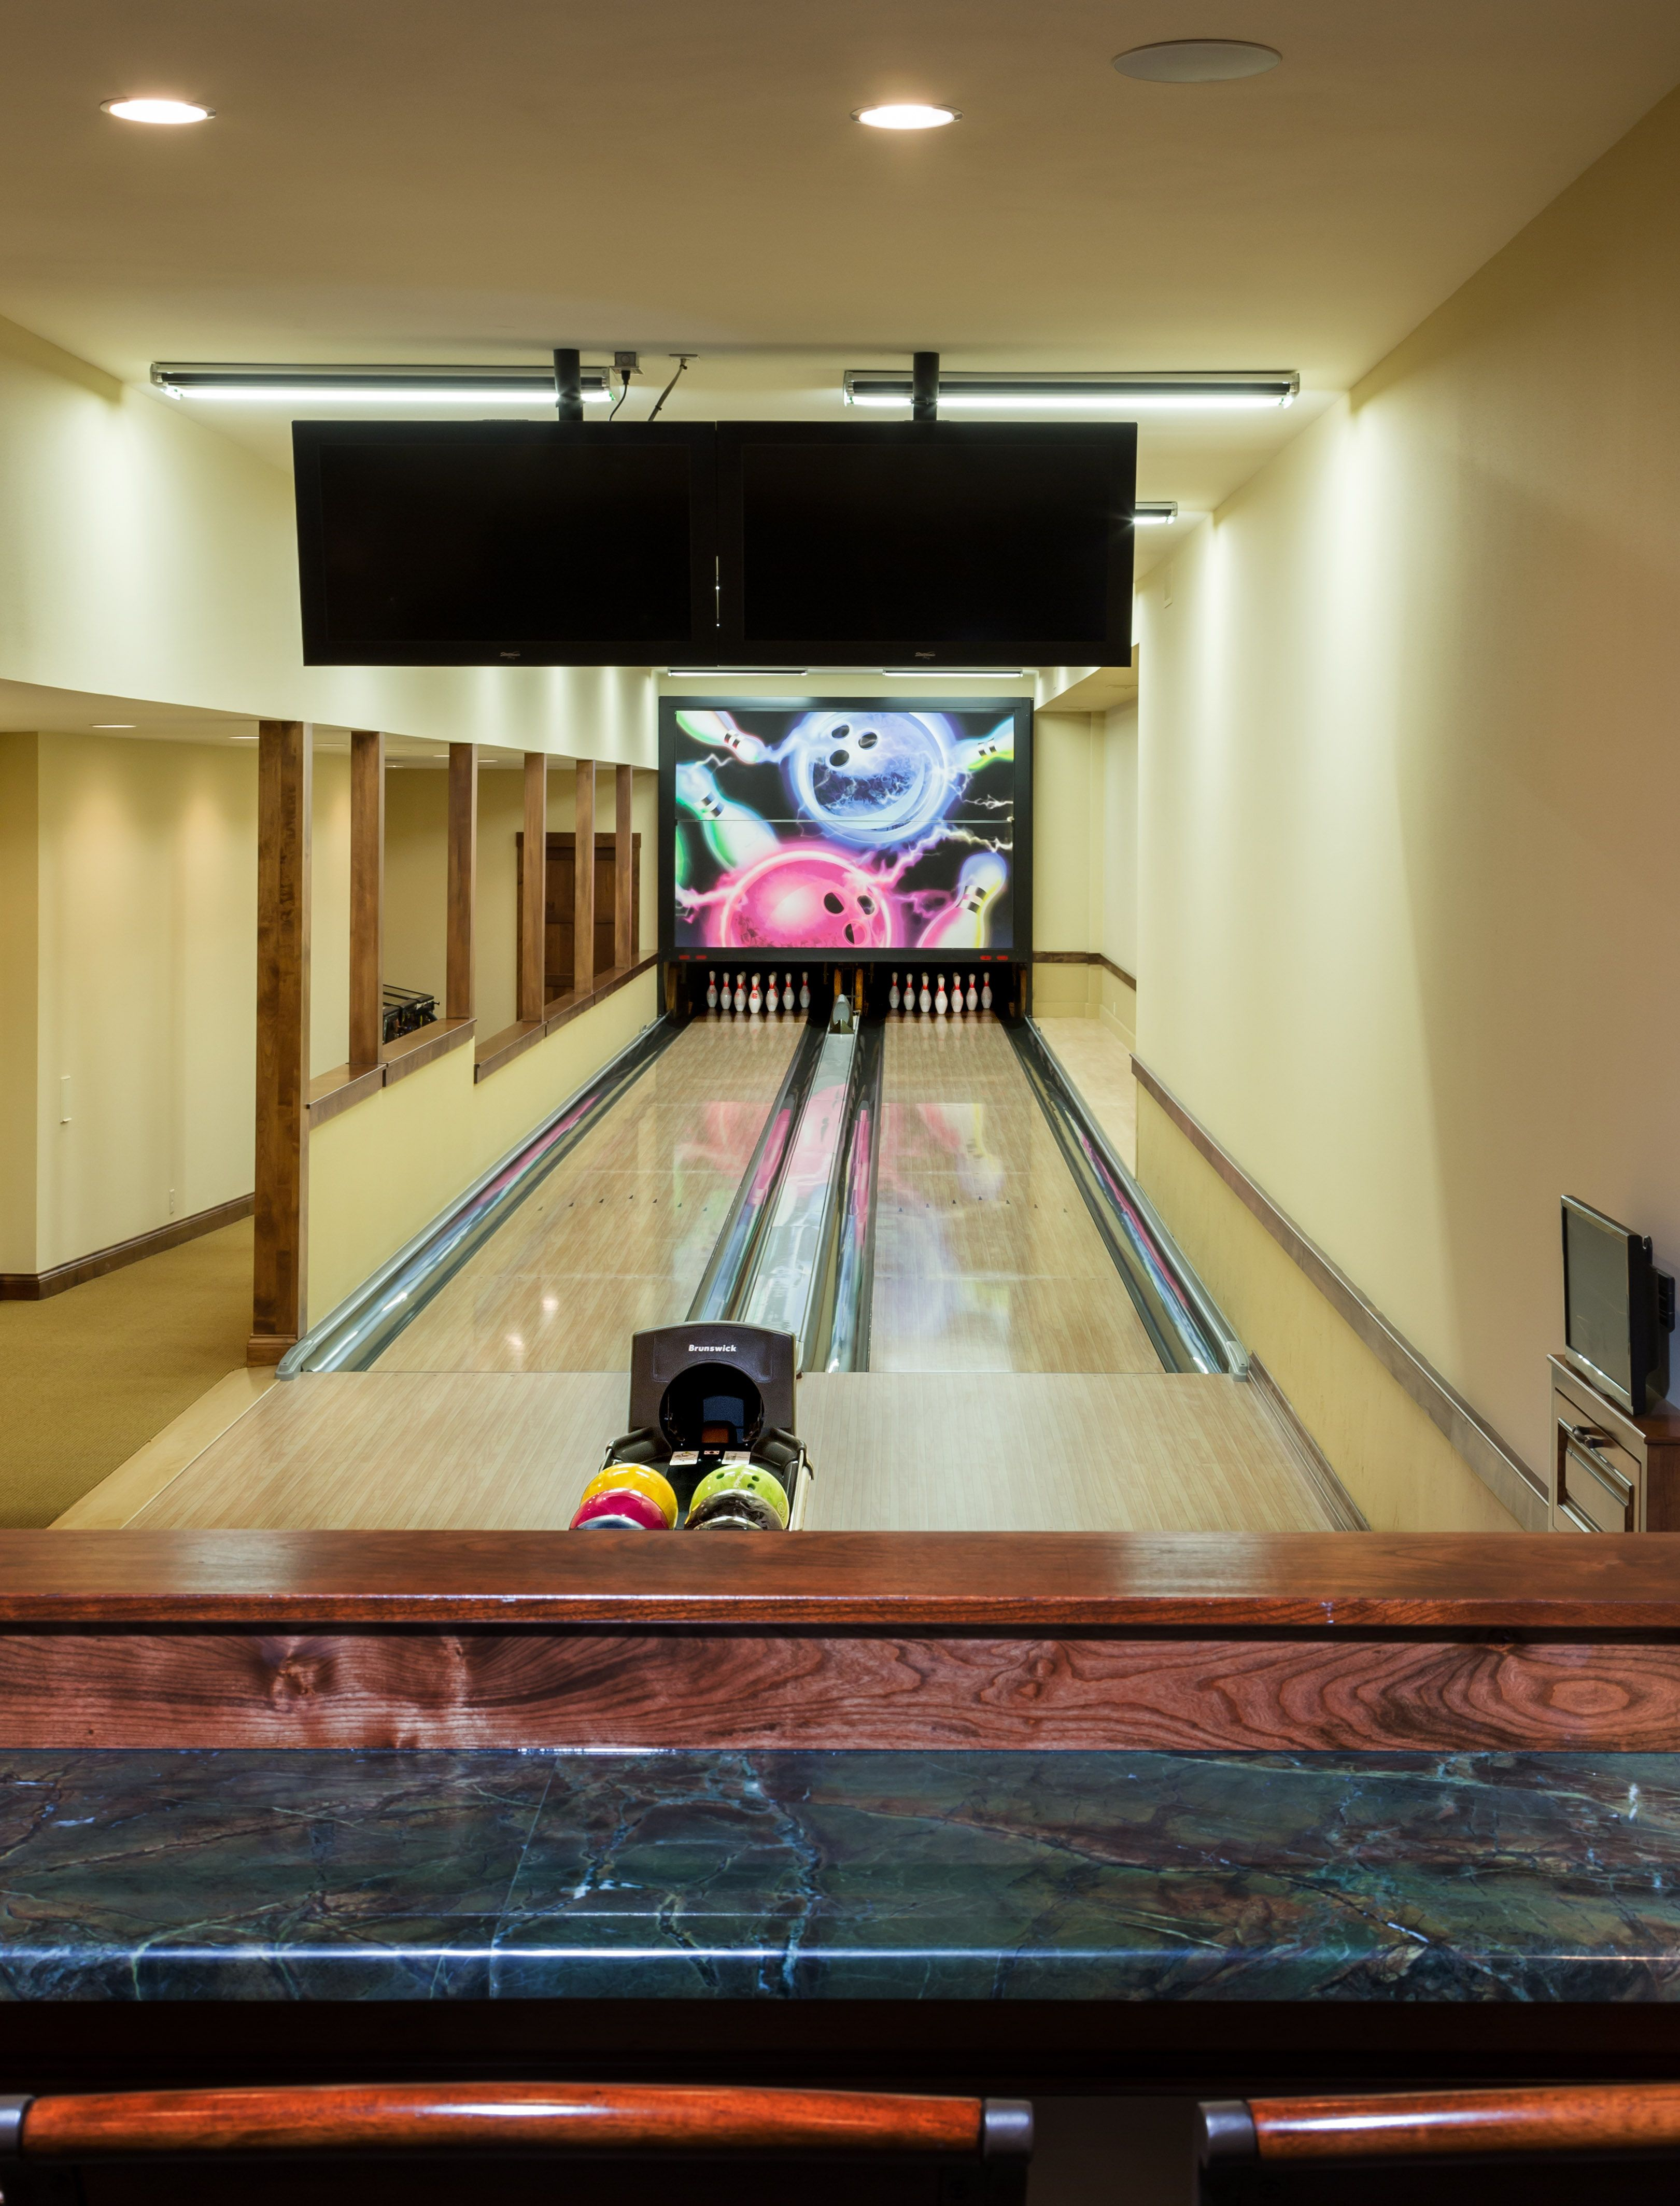 In Home Bowling Alley Home Bowling Alley Dream Home Design Home Entertainment